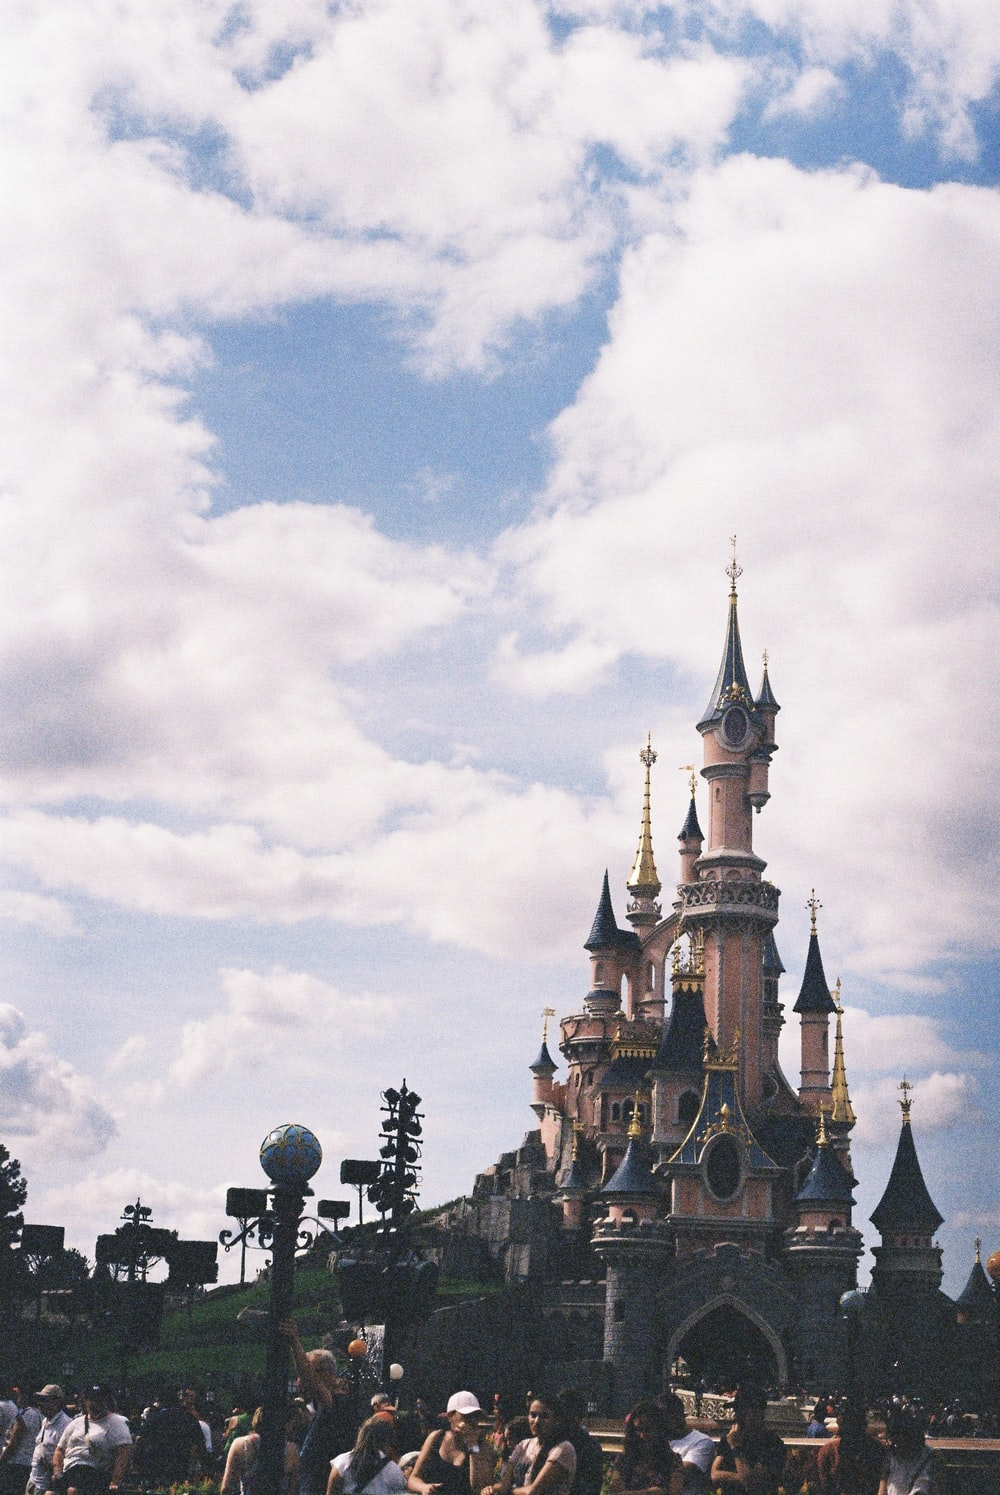 pink and blue Disneyland castle under white and blue cloudy sky